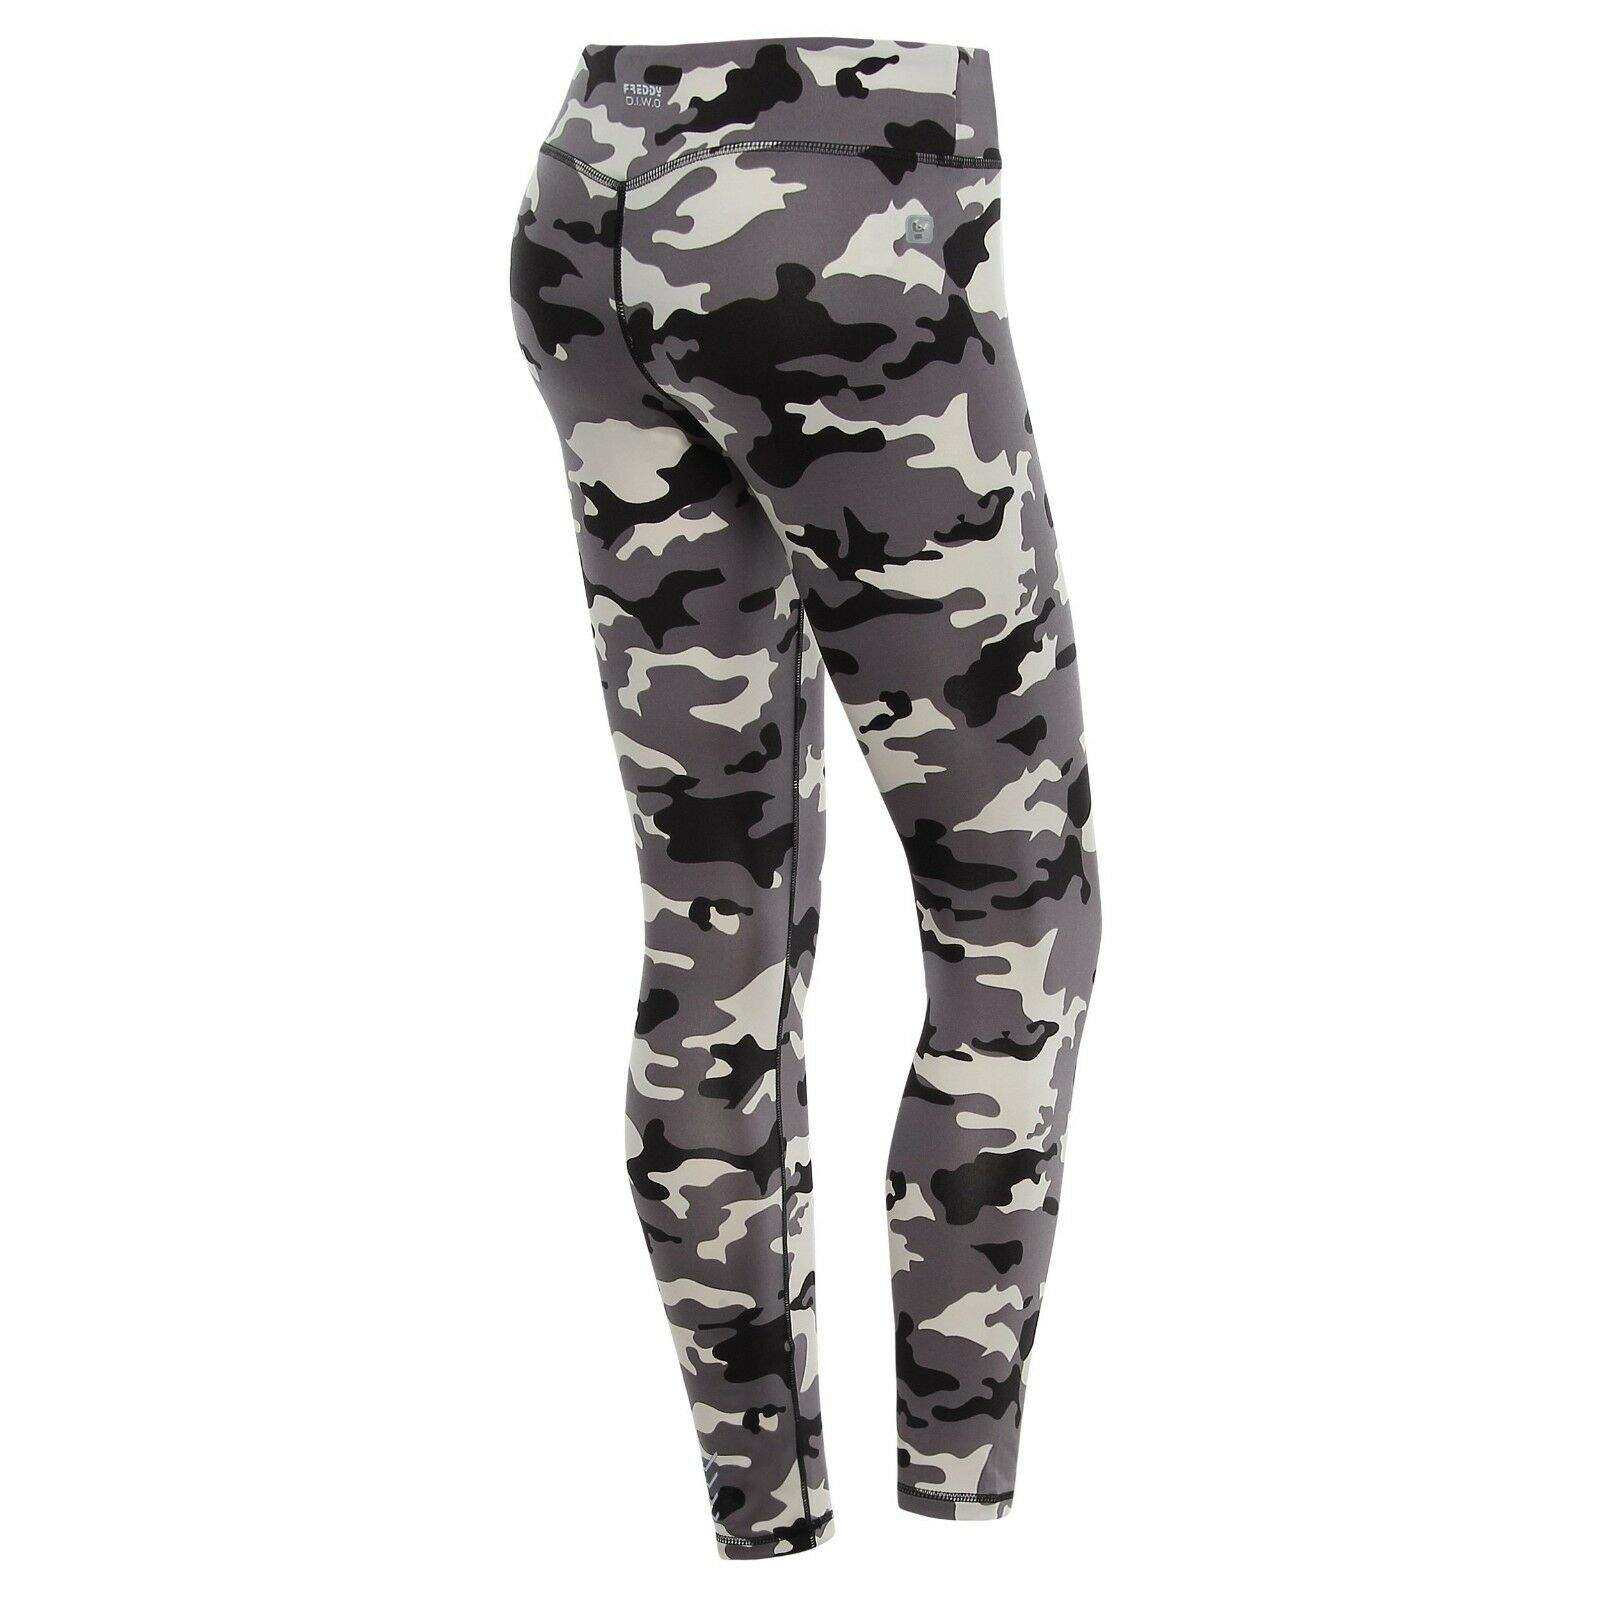 FREDDY WR.UP® WOMEN CAMO PANTS - MID WAIST BODY SHAPE LEGGINGS - SKINNY FIT-GREY